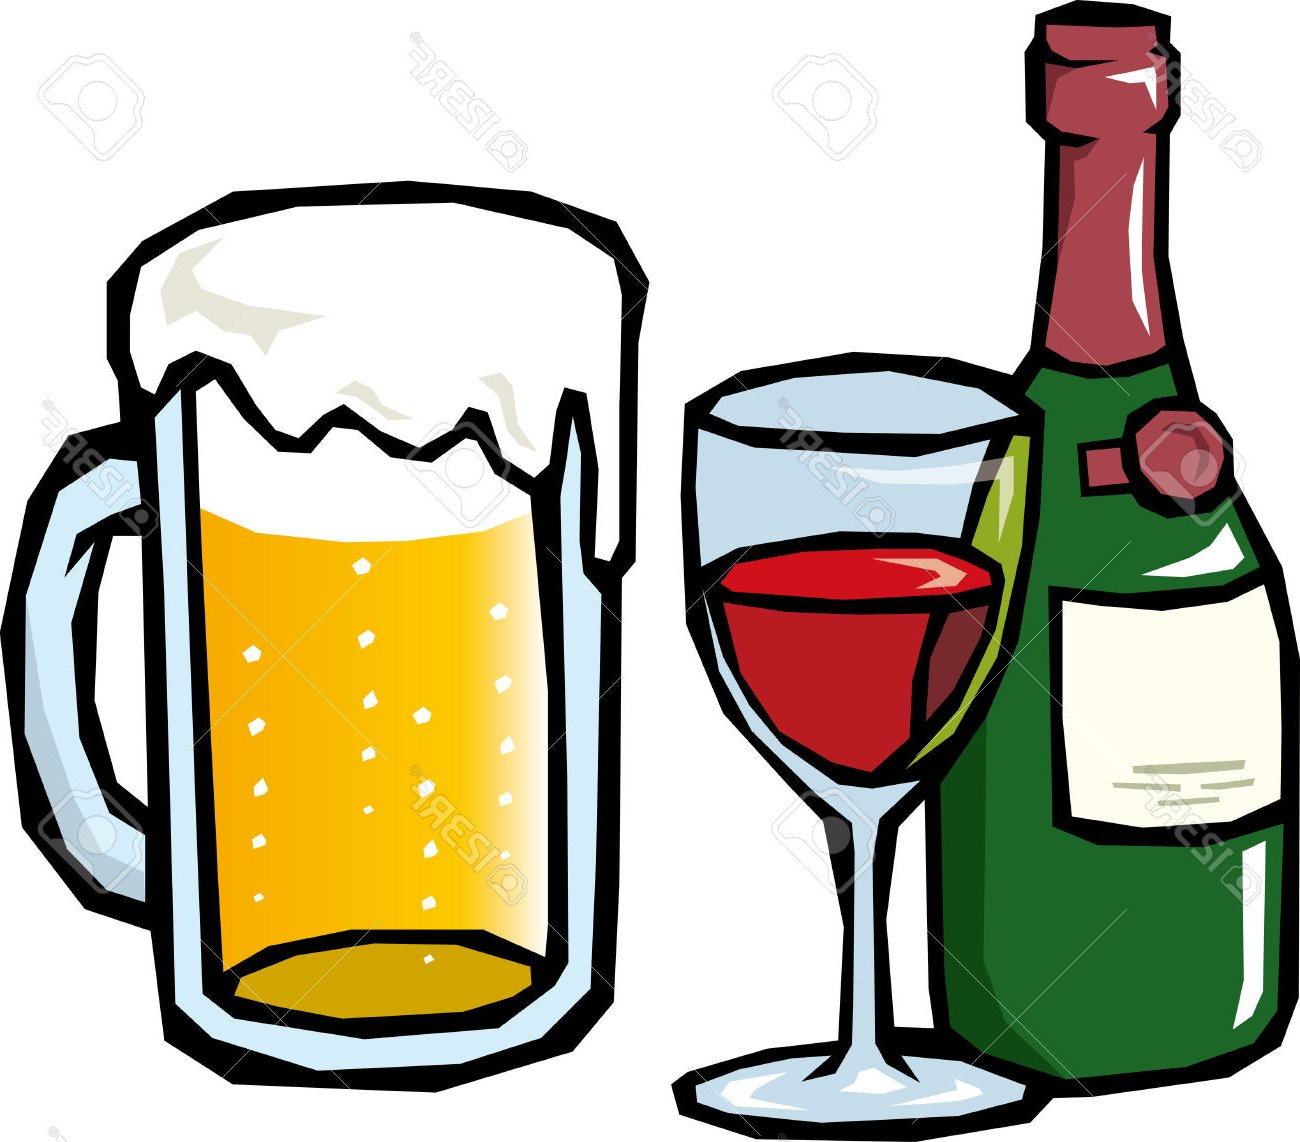 image transparent library Beer transparent free for. Alcohol clipart.